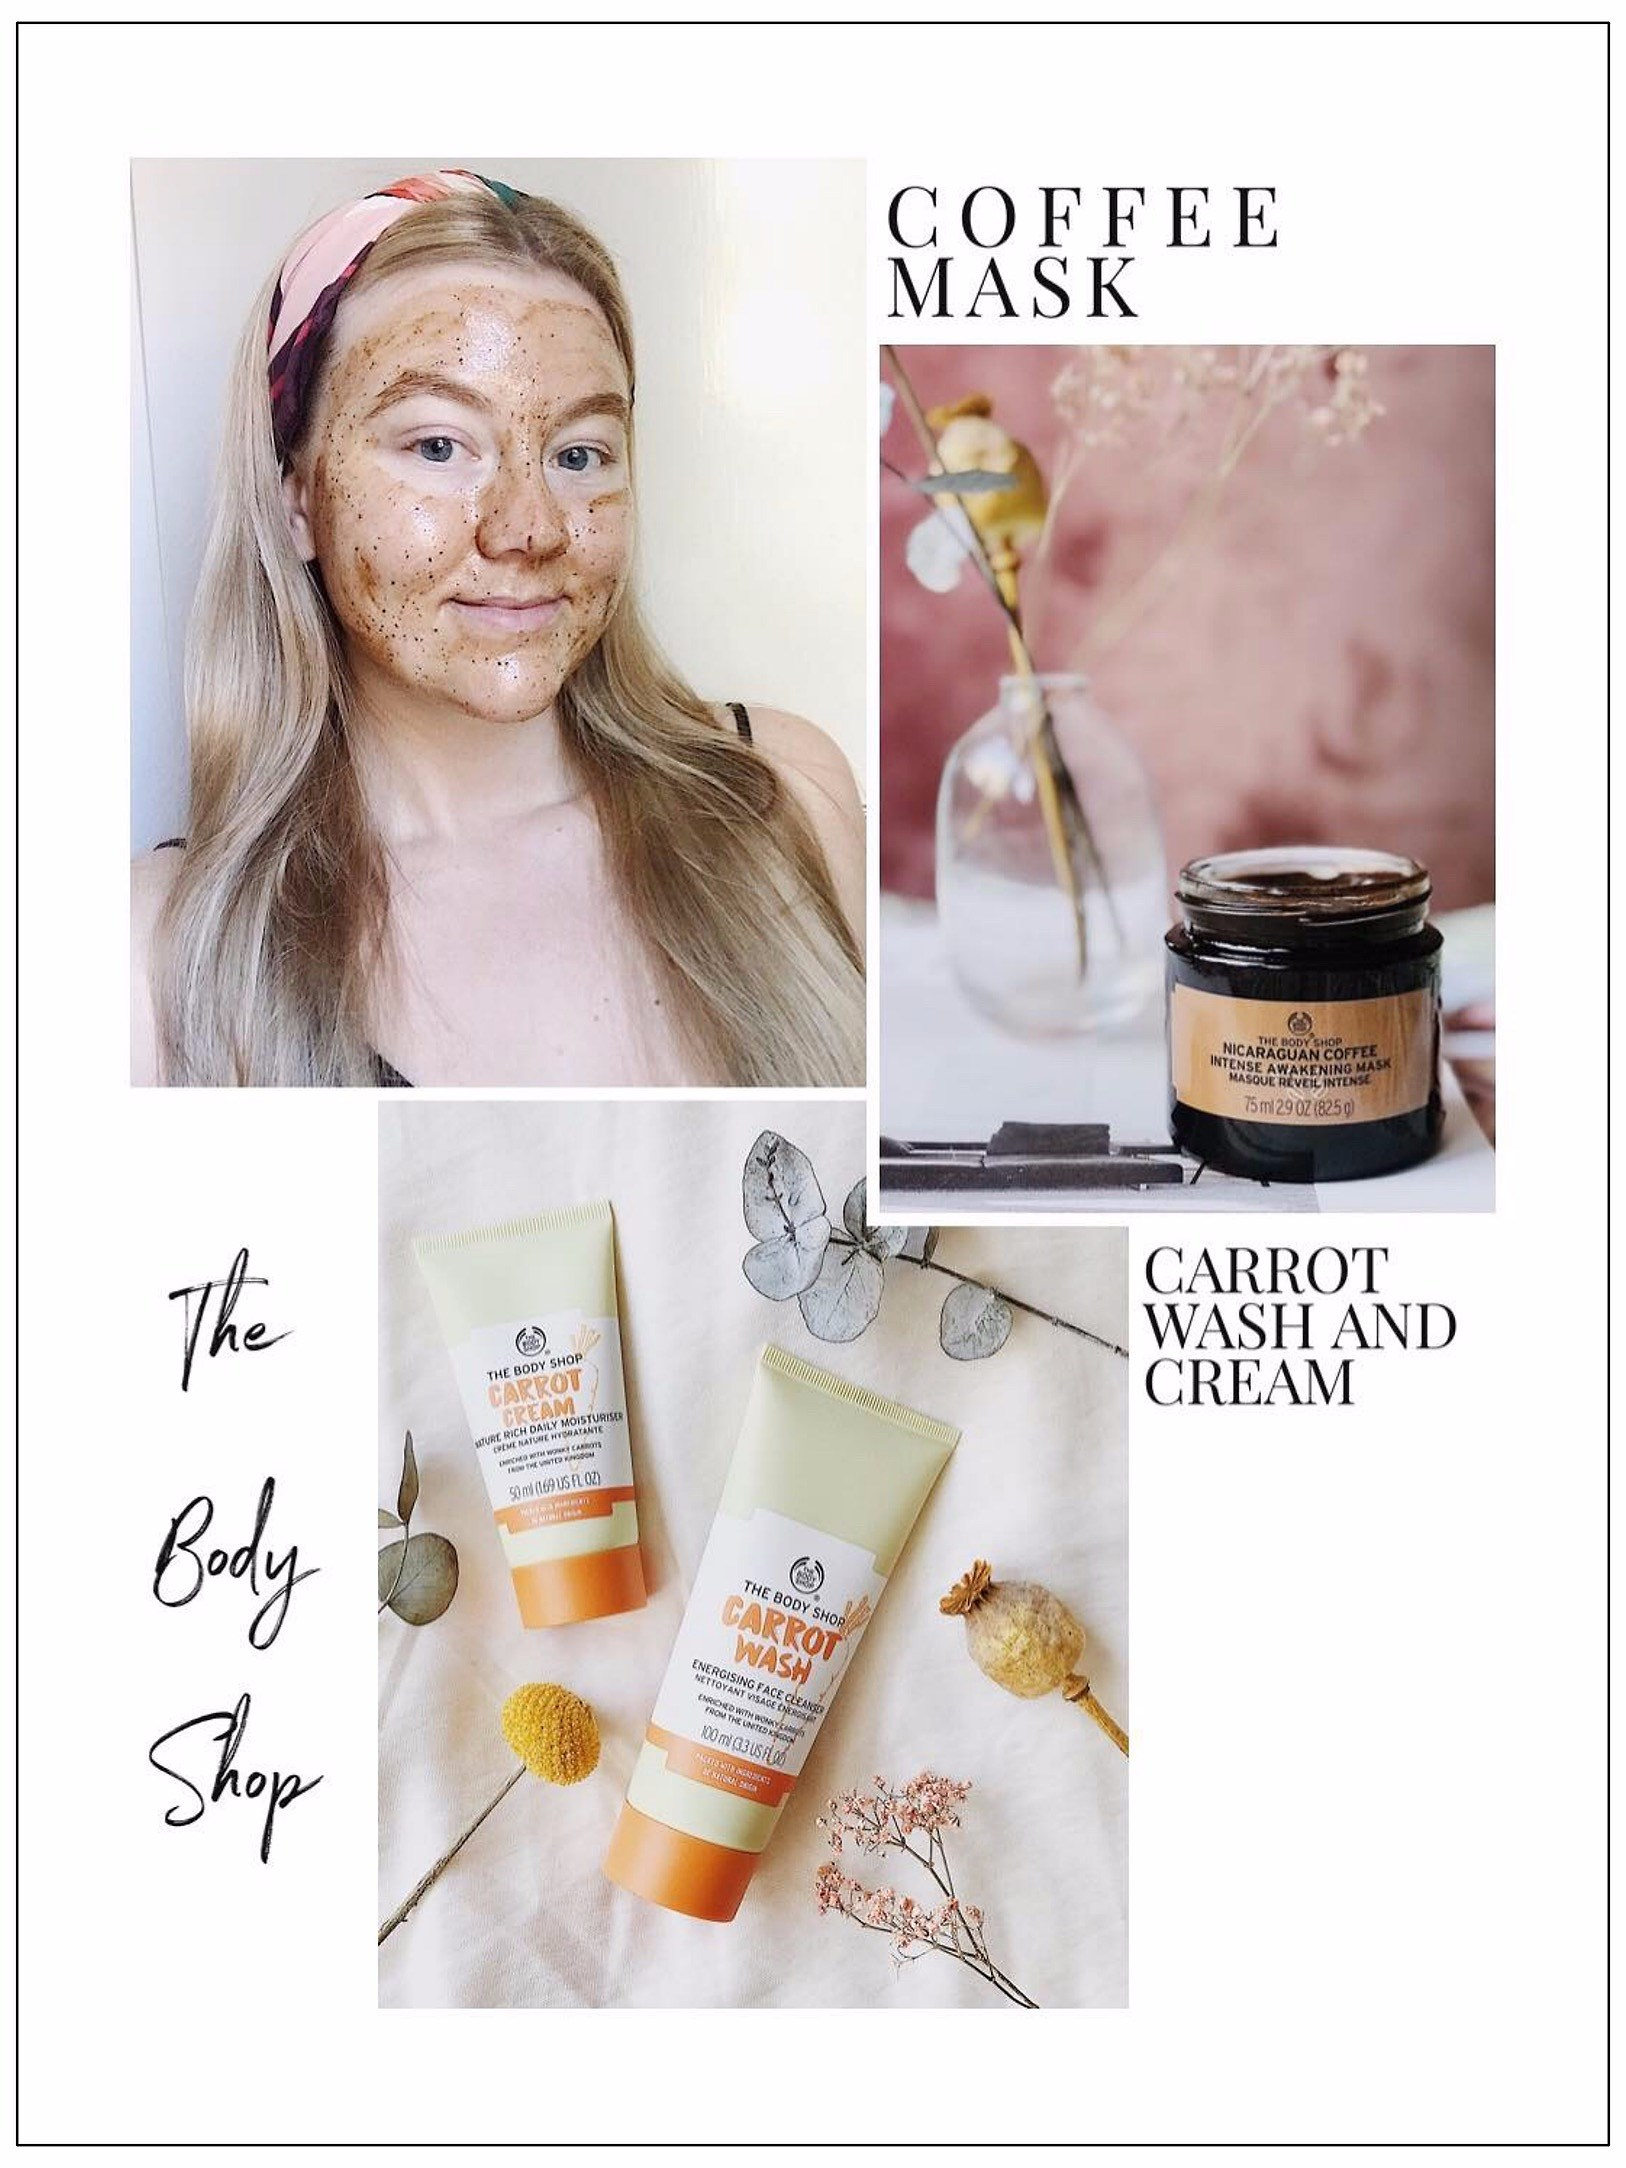 THE BODY SHOP / CARROT & COFFE SKIN CARE